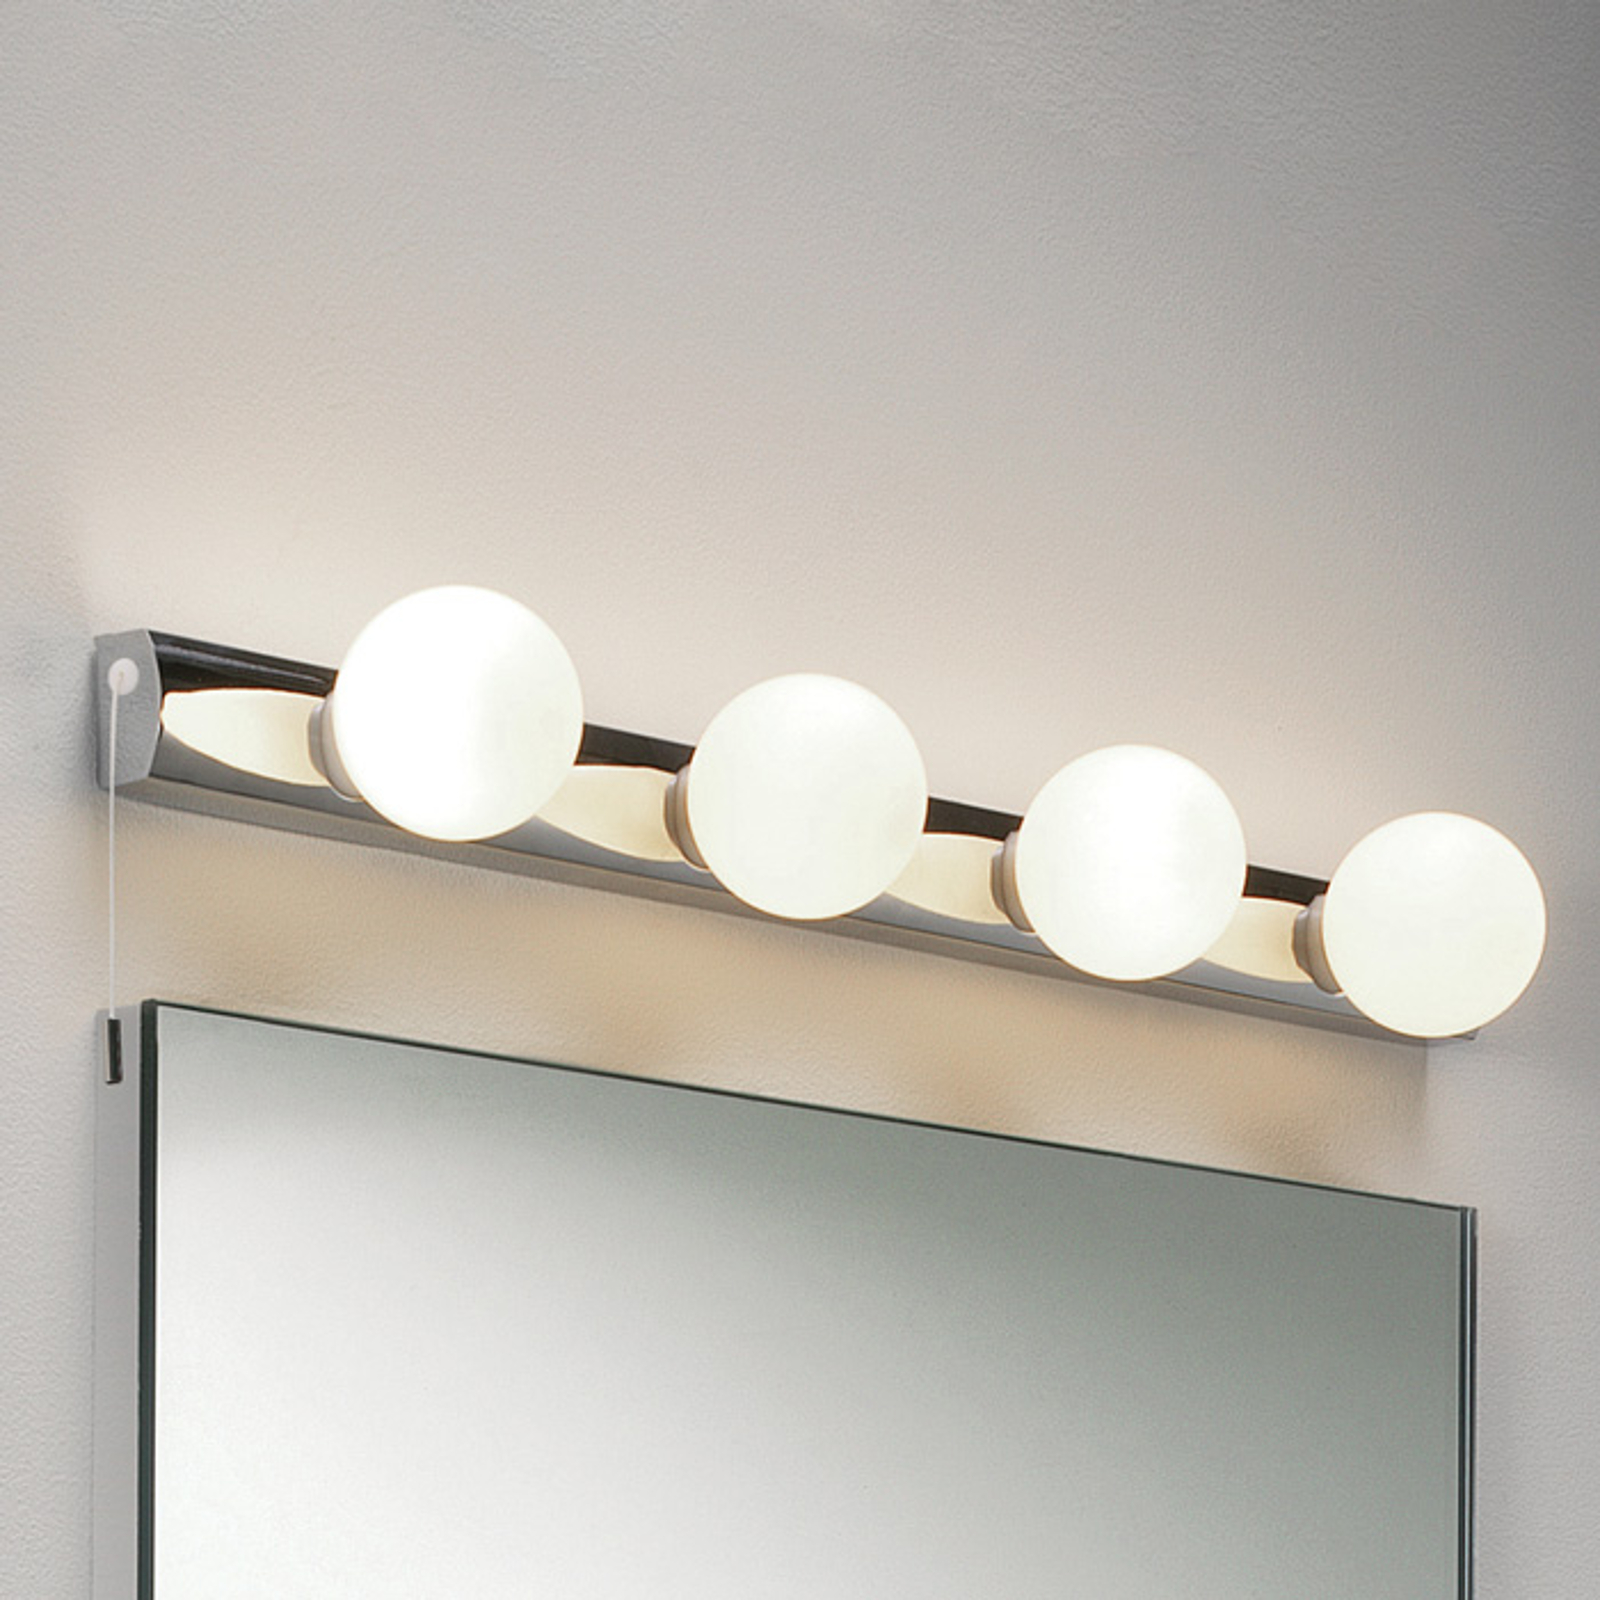 Cabaret Wall Light Attractive with Pull Switch_1020033_1